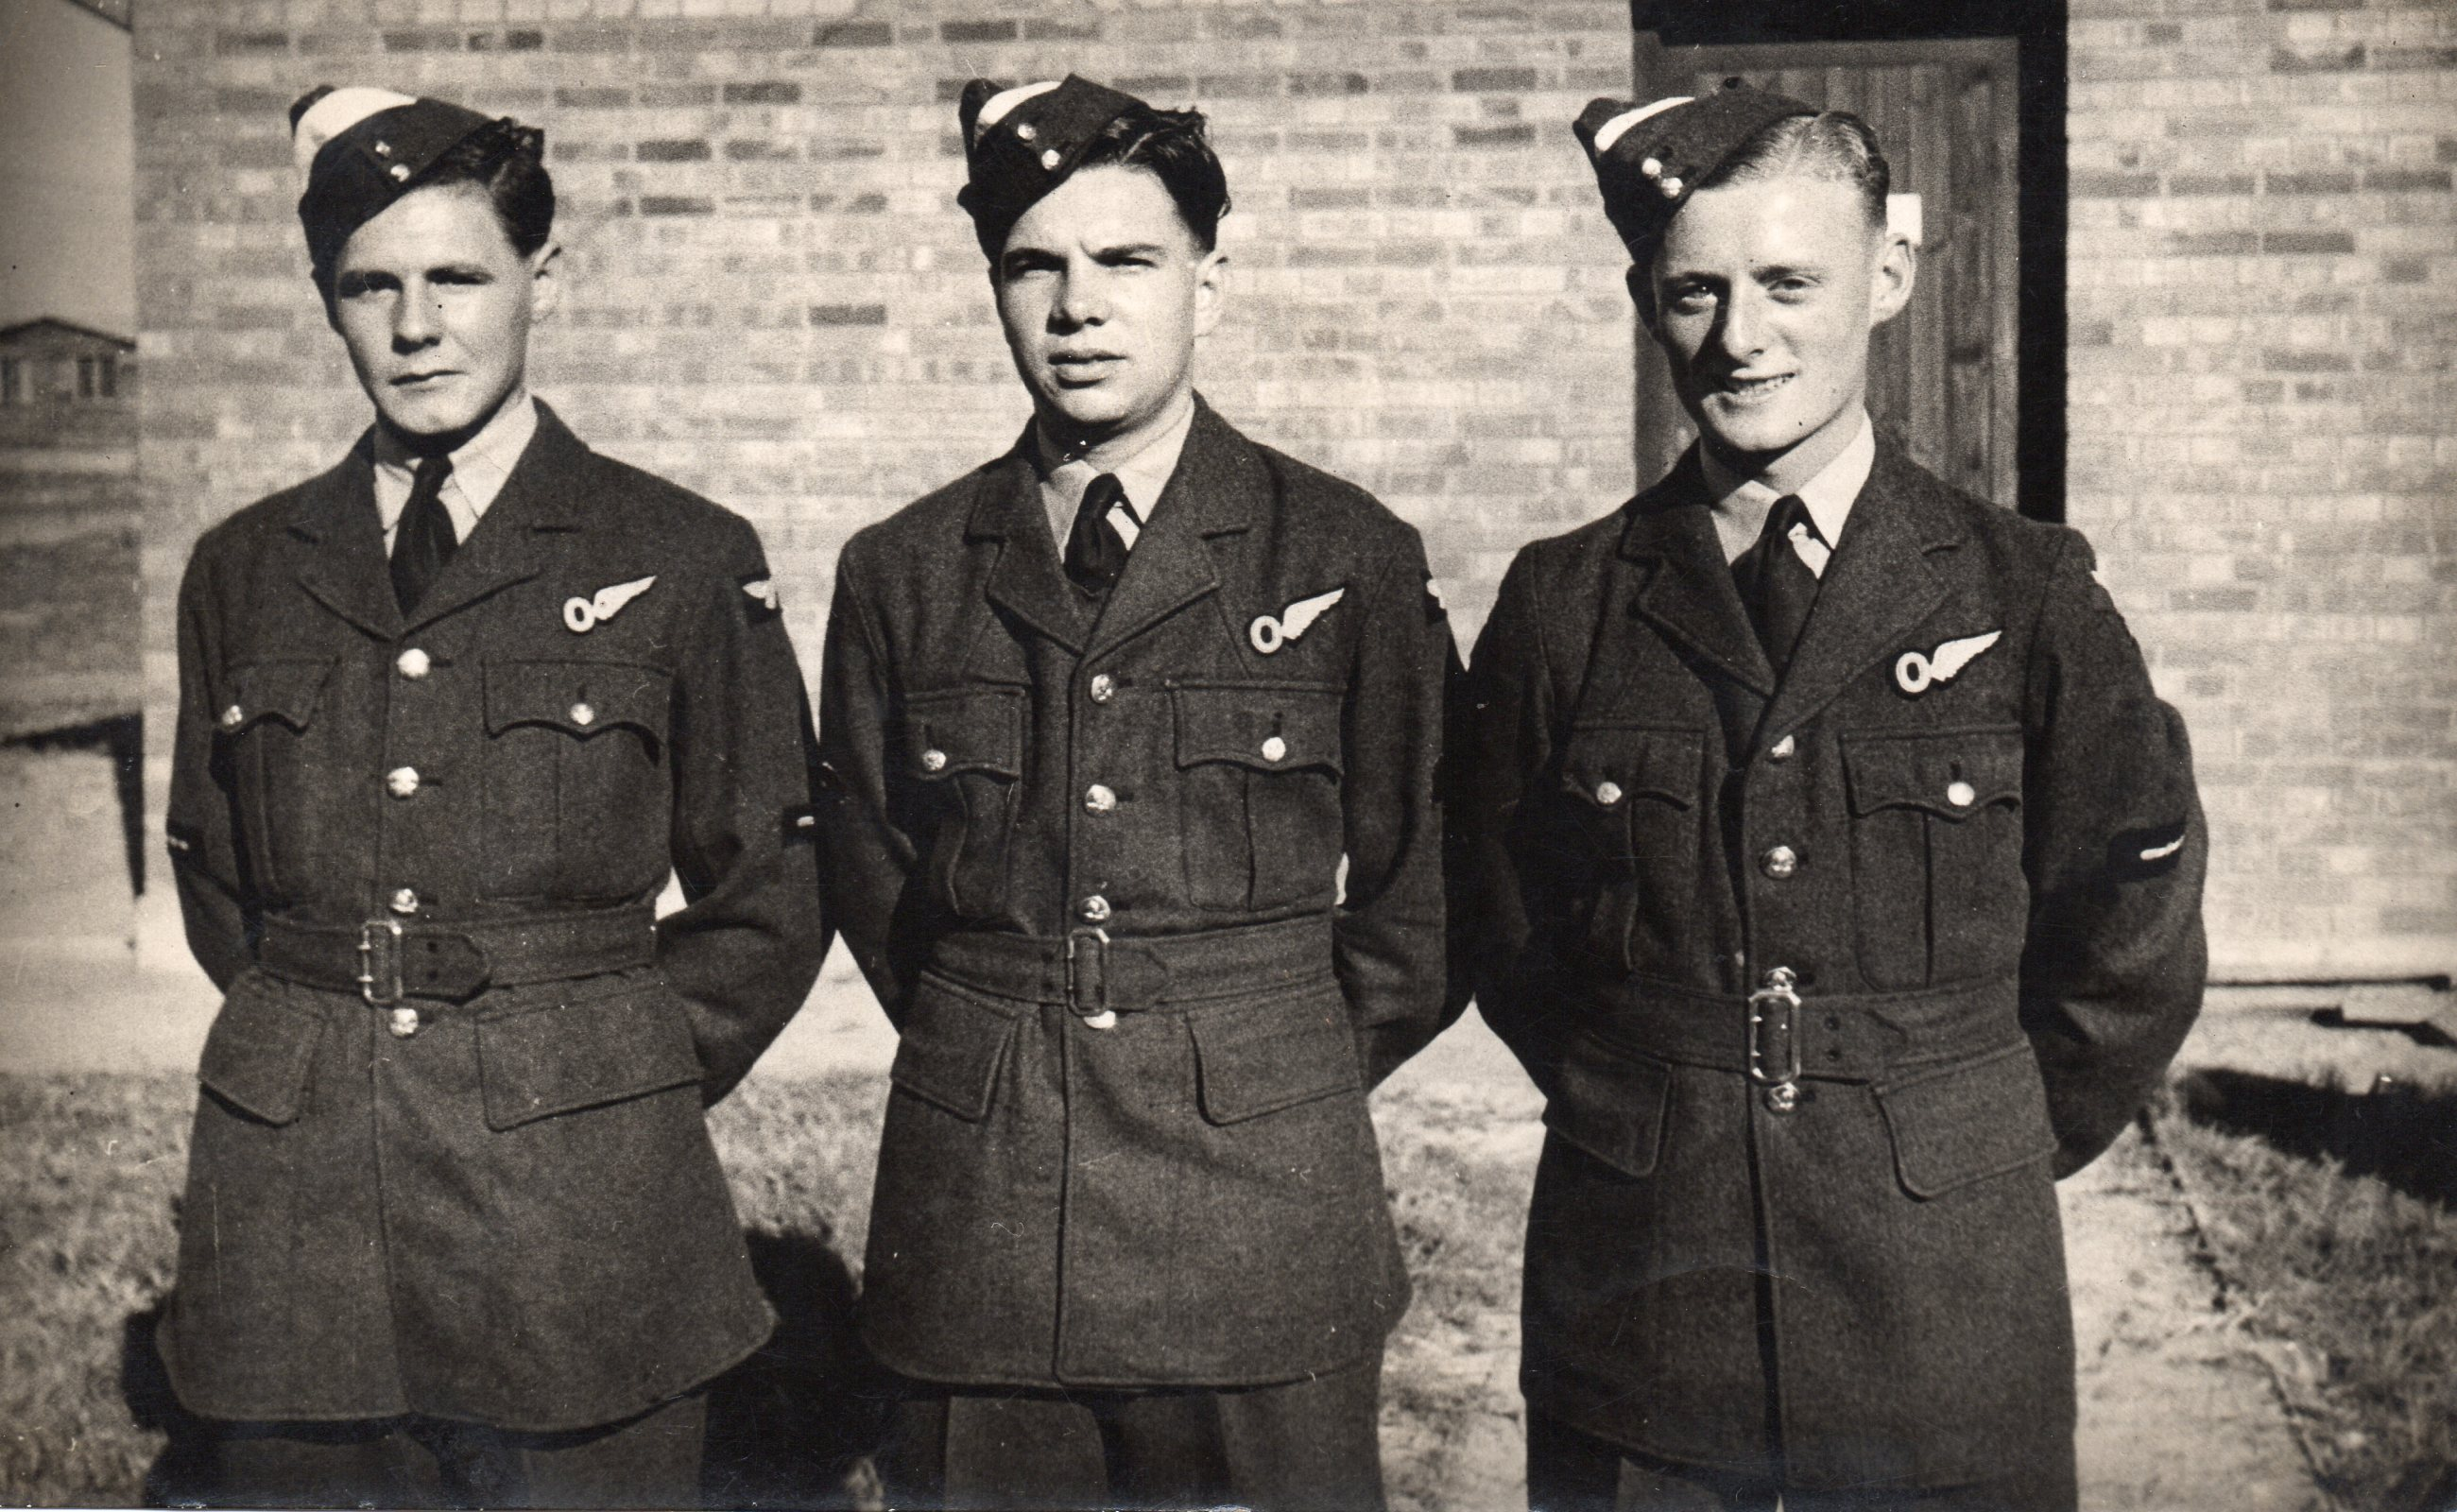 Groups of 3 airmen, J C McGhee at right